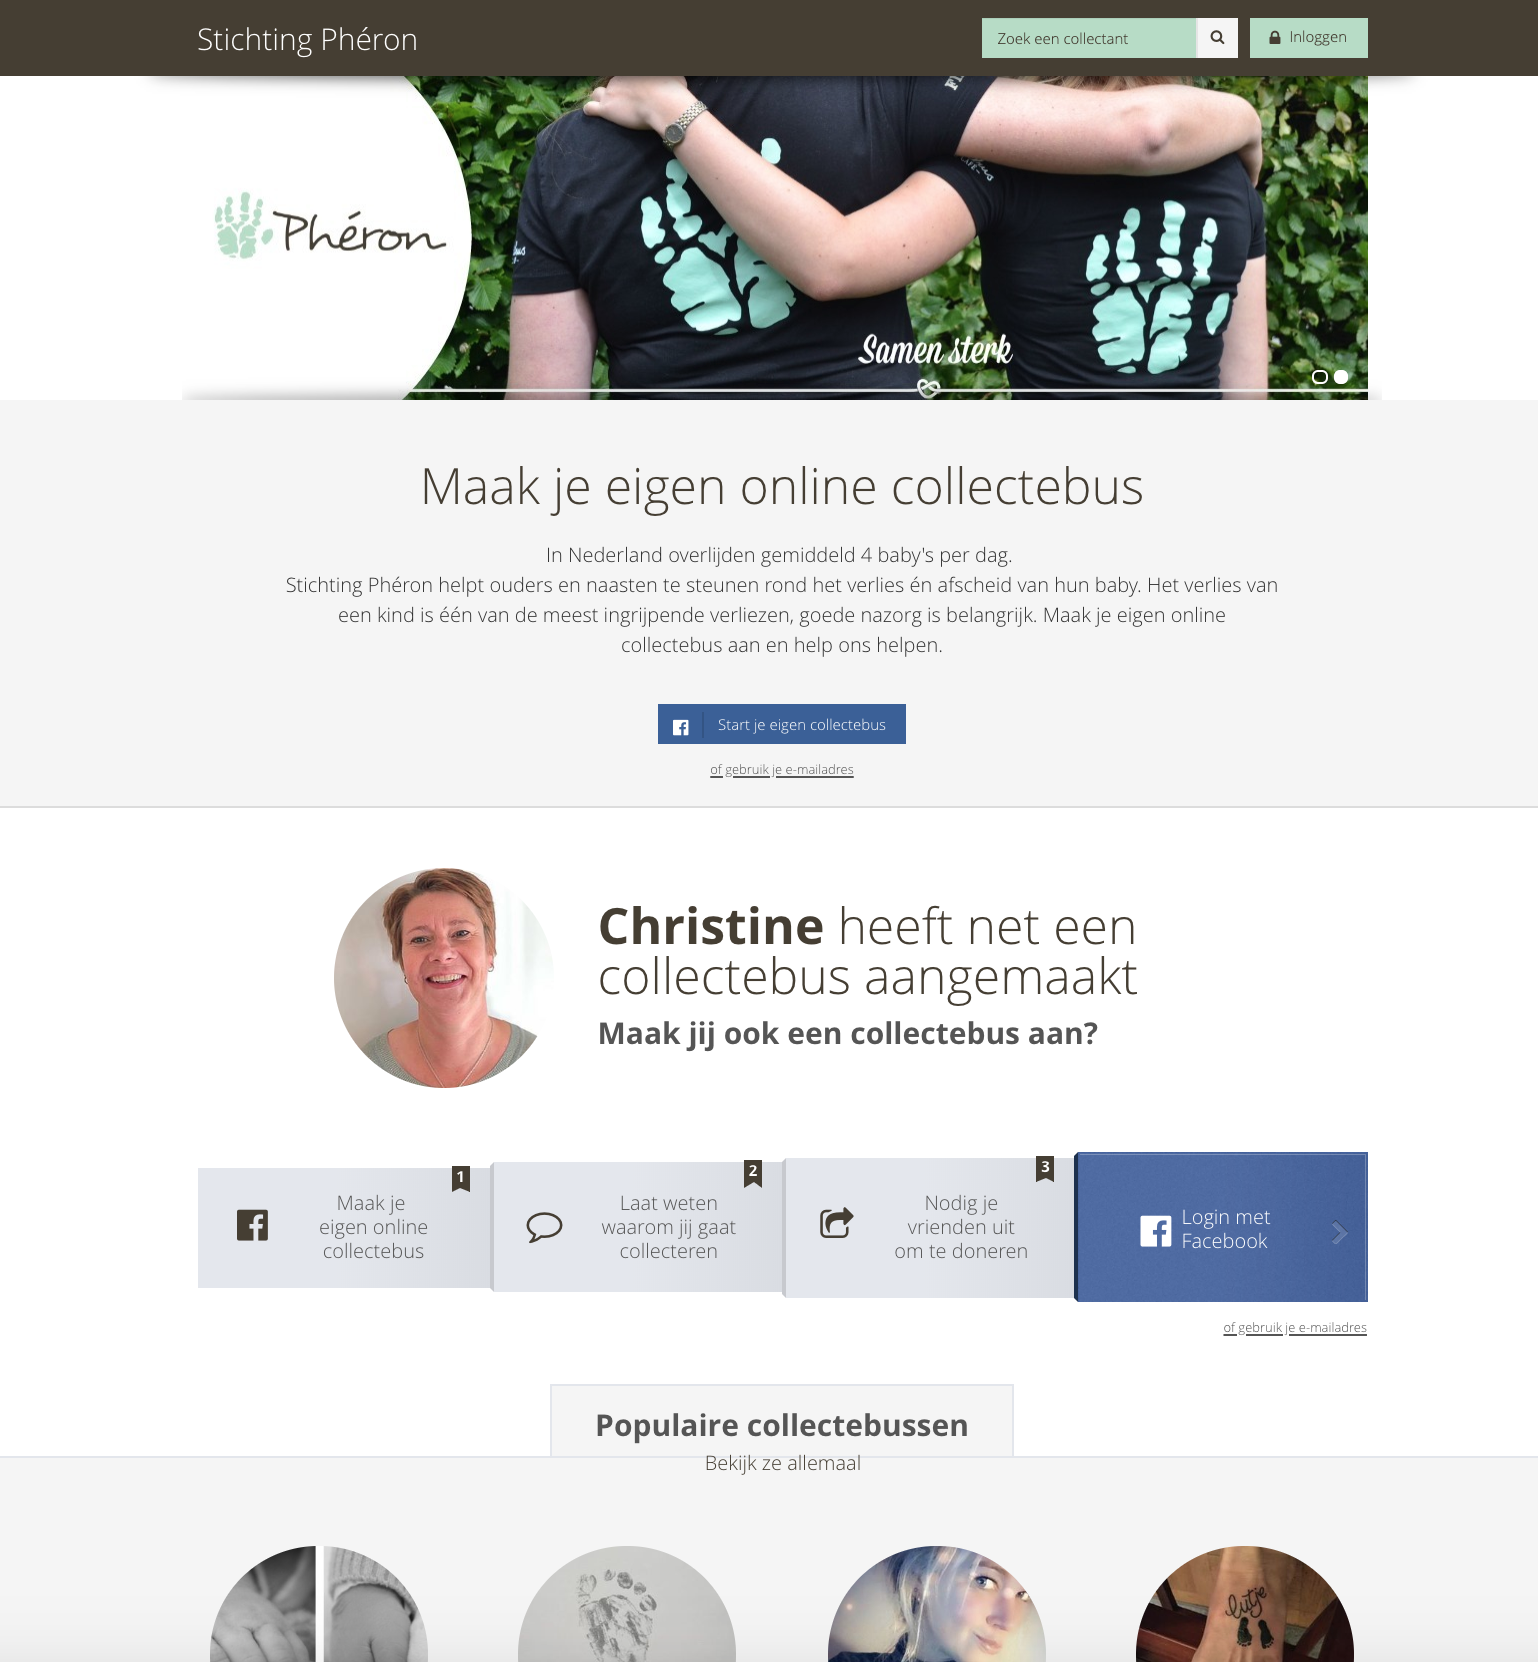 Website stichting pheron